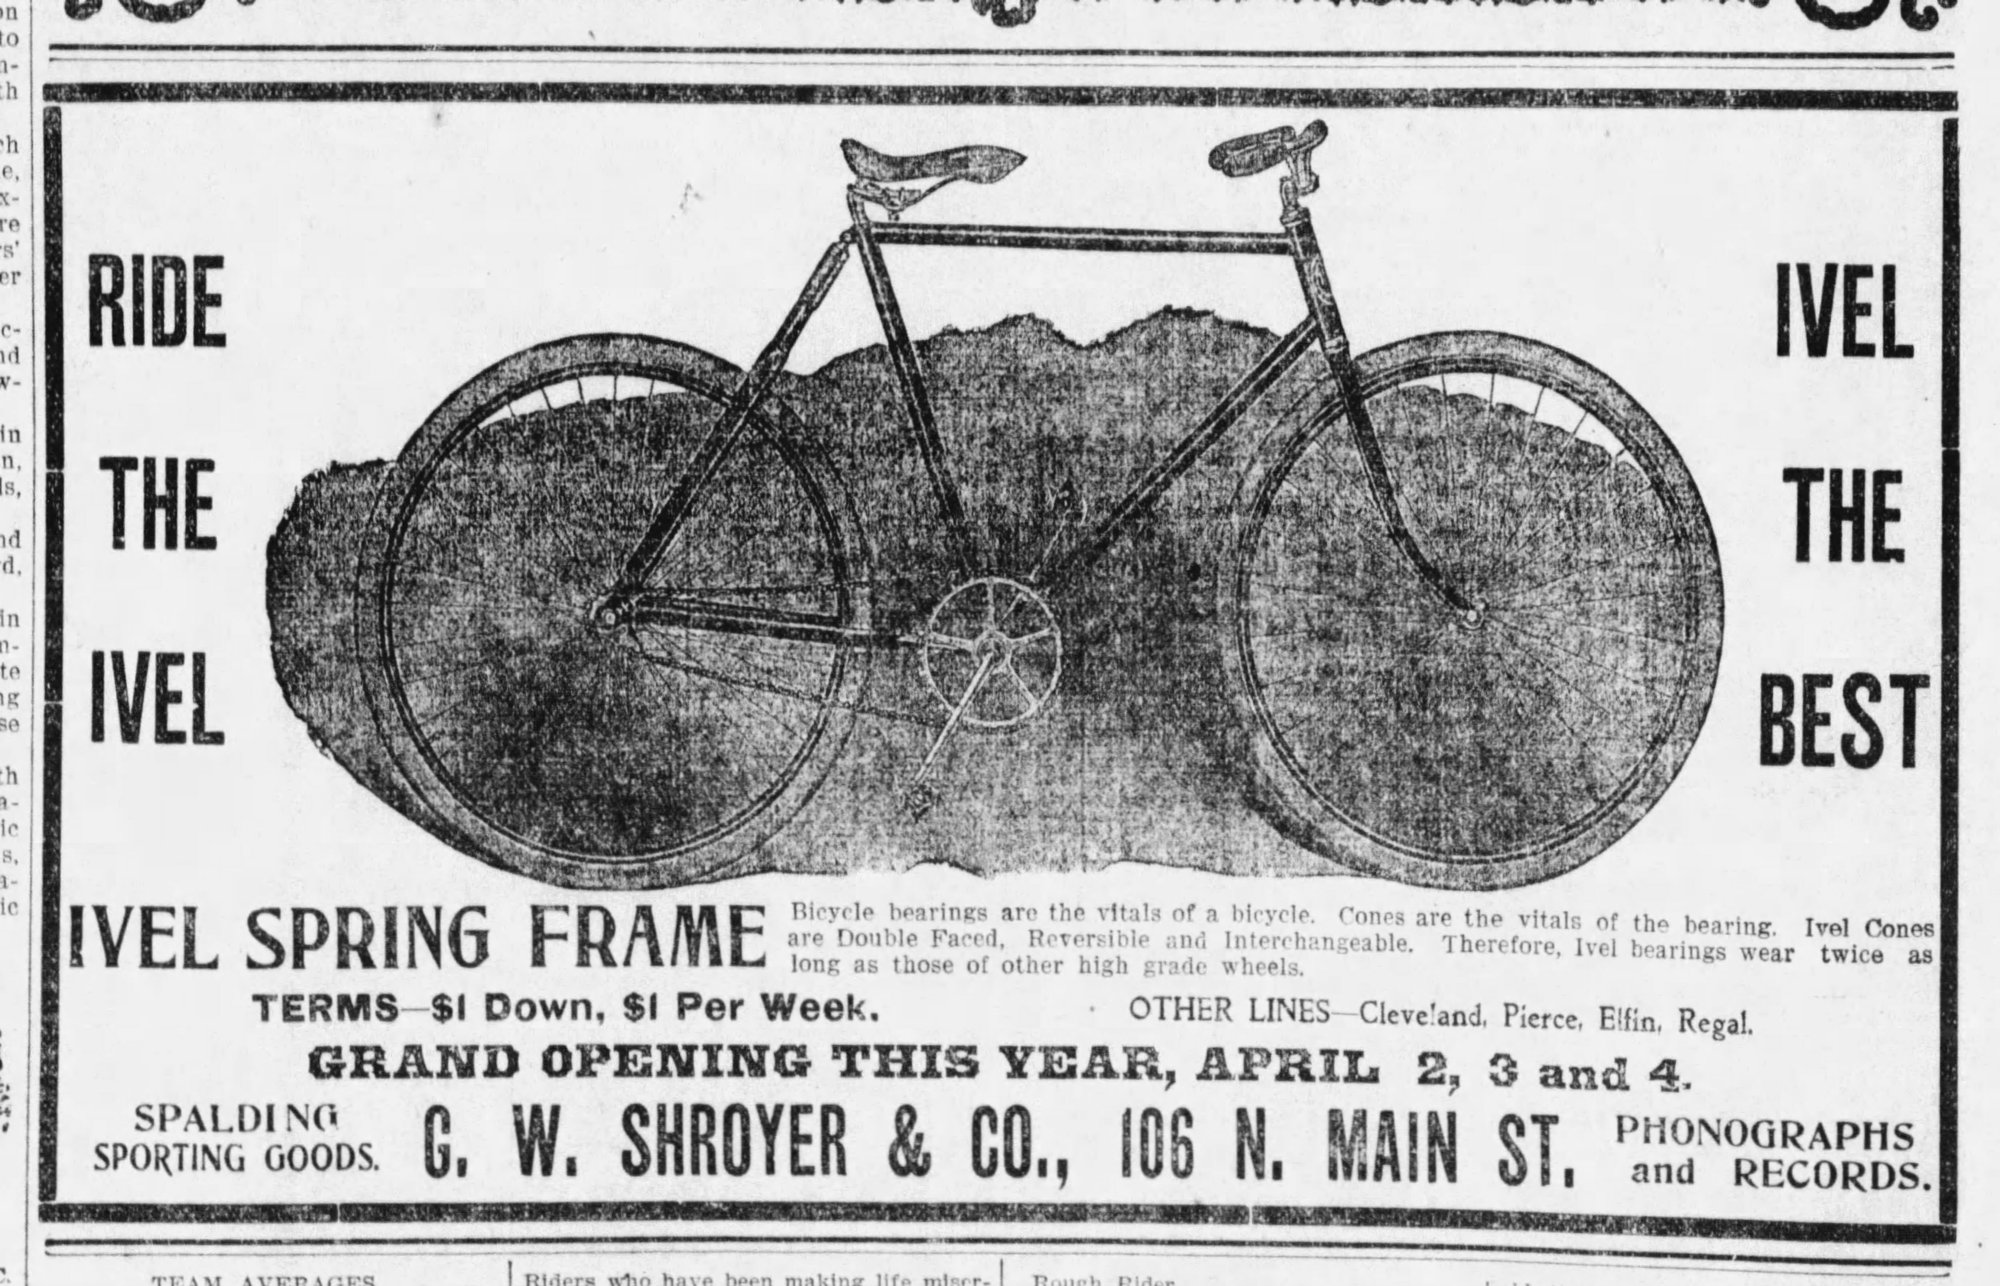 1902=Grand Opening includes IVEL SPRING FRAME +++The_Dayton_Herald_Sat__Mar_29__1902_.jpg